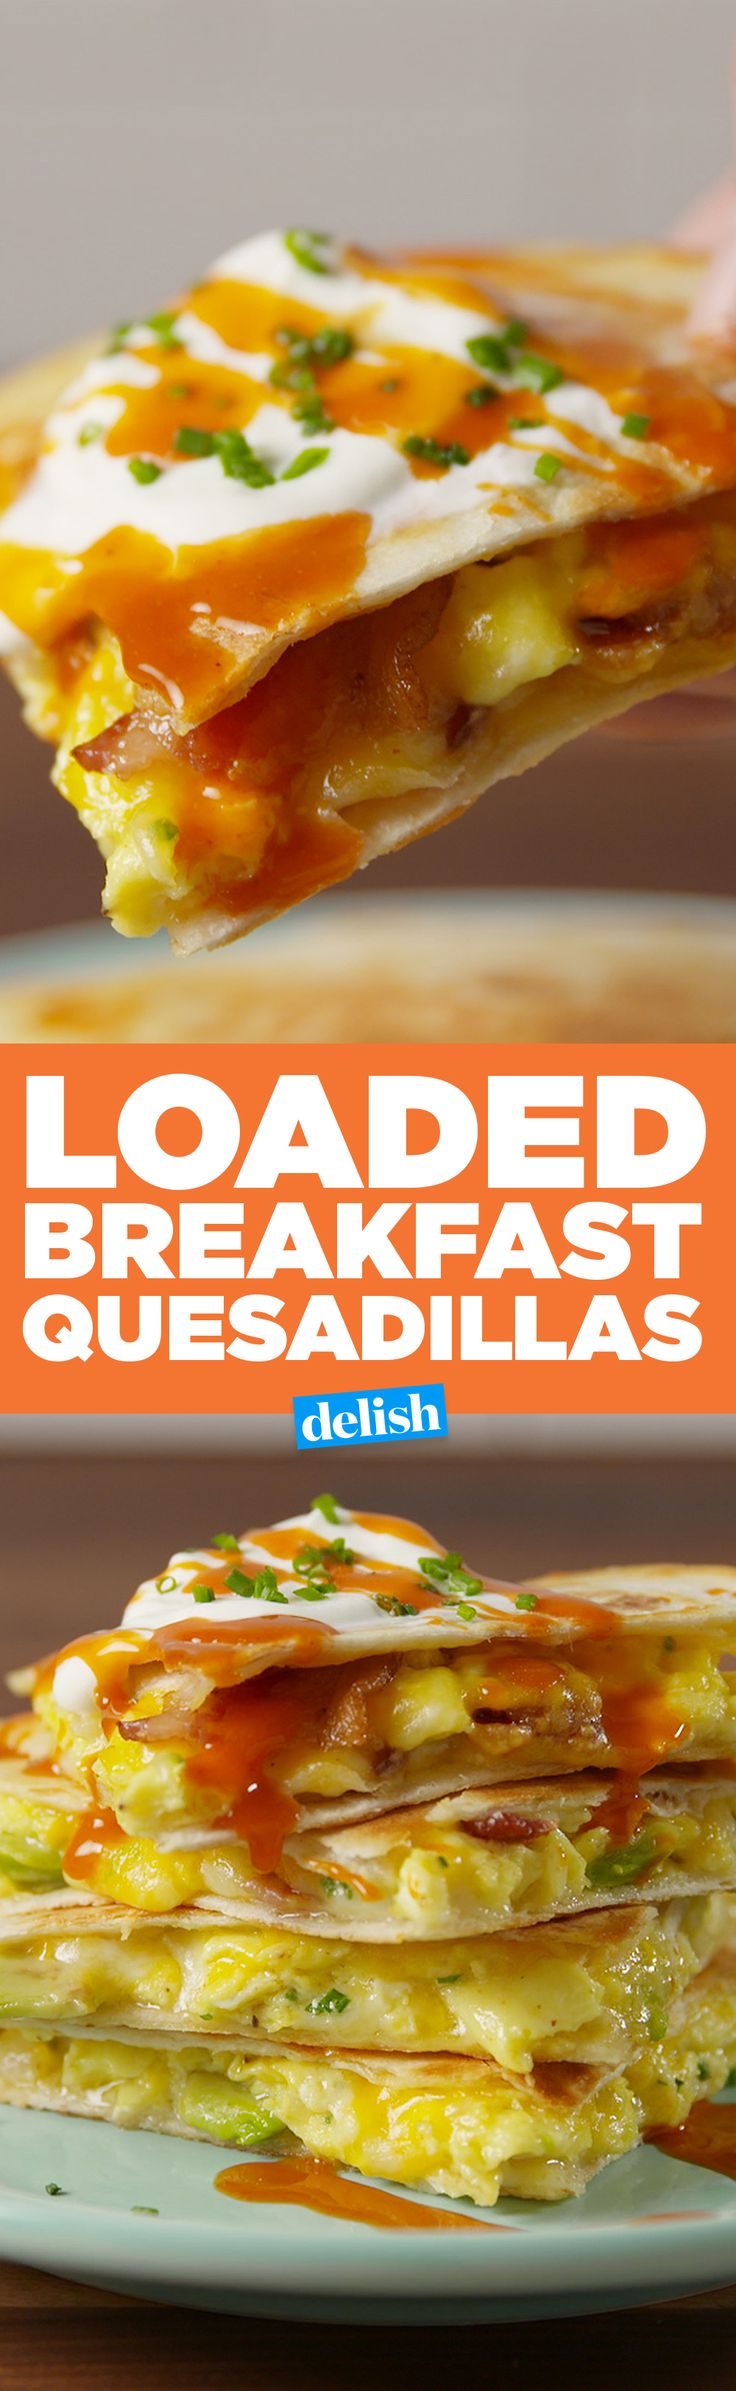 Breakfast sandwiches are great, but have you tried Loaded Breakfast Quesadillas? Get the recipe on Delish.com.